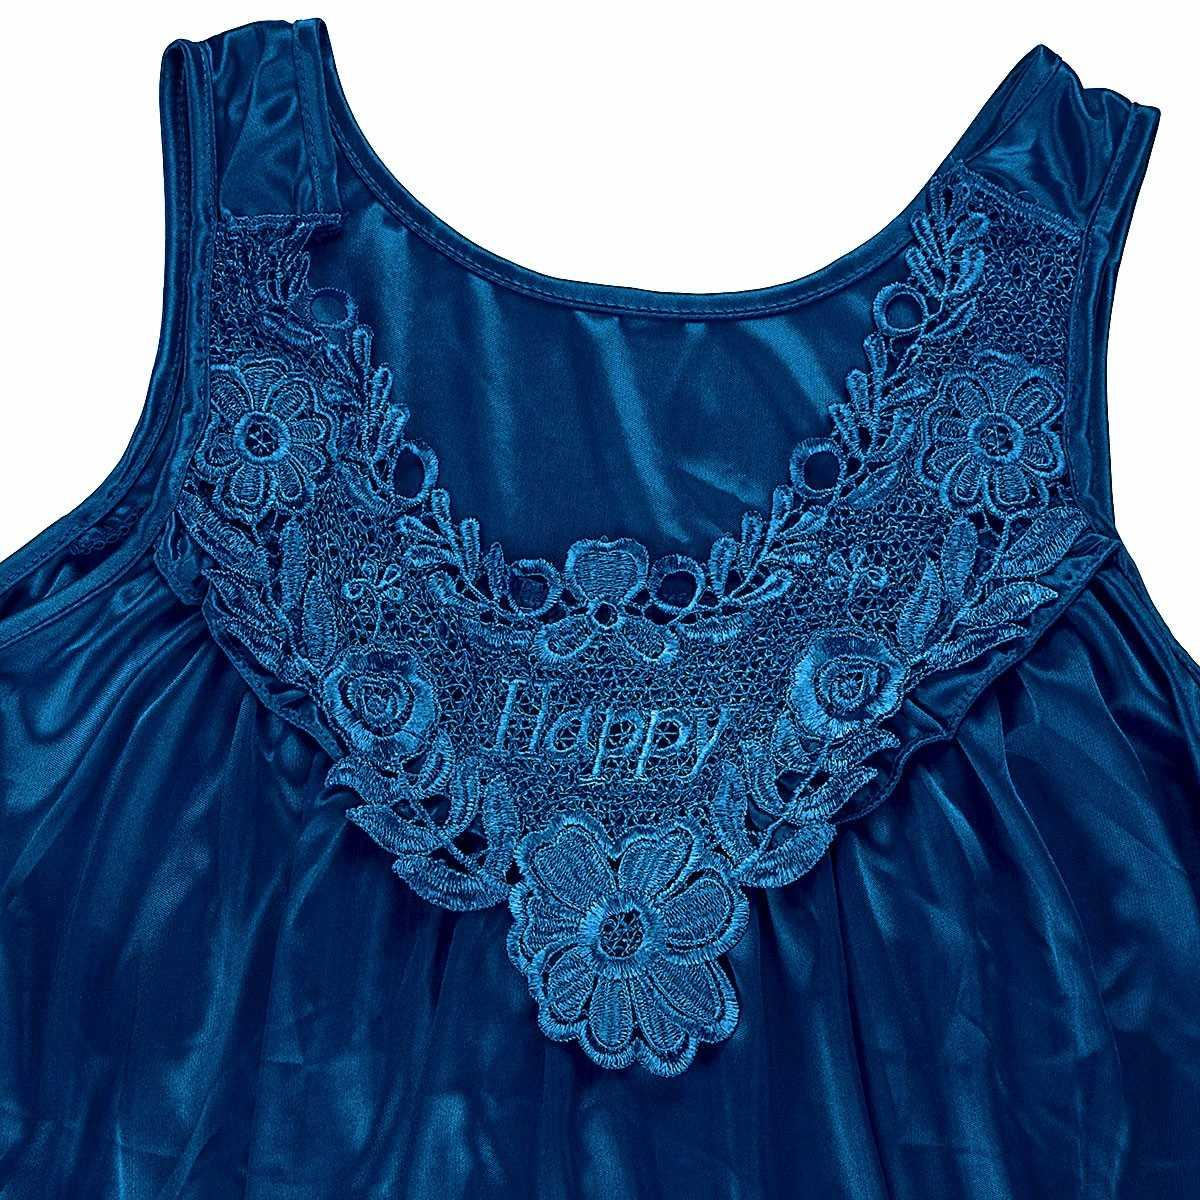 2016 Fashion Women Ladies Sexy Lace Long Peignoir Sleepwear Robes Soft And Silk-like Comfortable To Touch And Wear